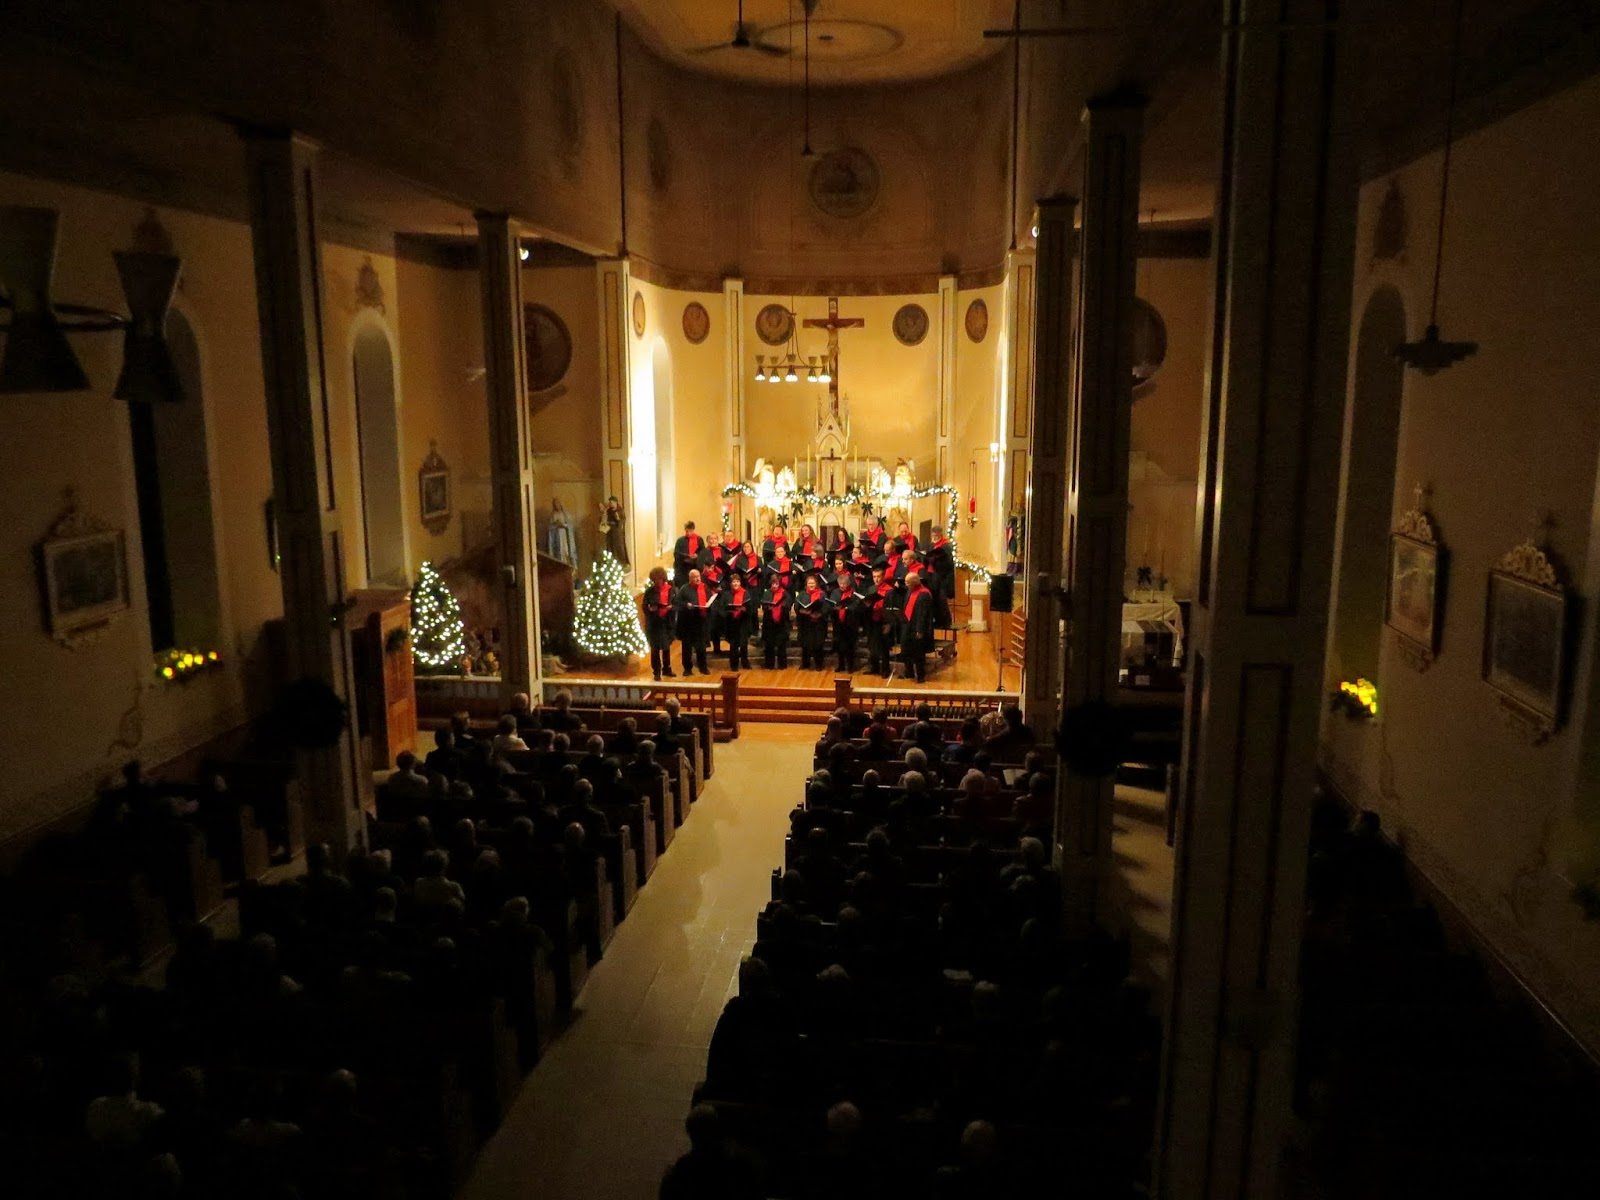 A Full House! View from the choir loft, St. Stephen's church, Chelsea, PQ Photo, Suzanne Gibeault